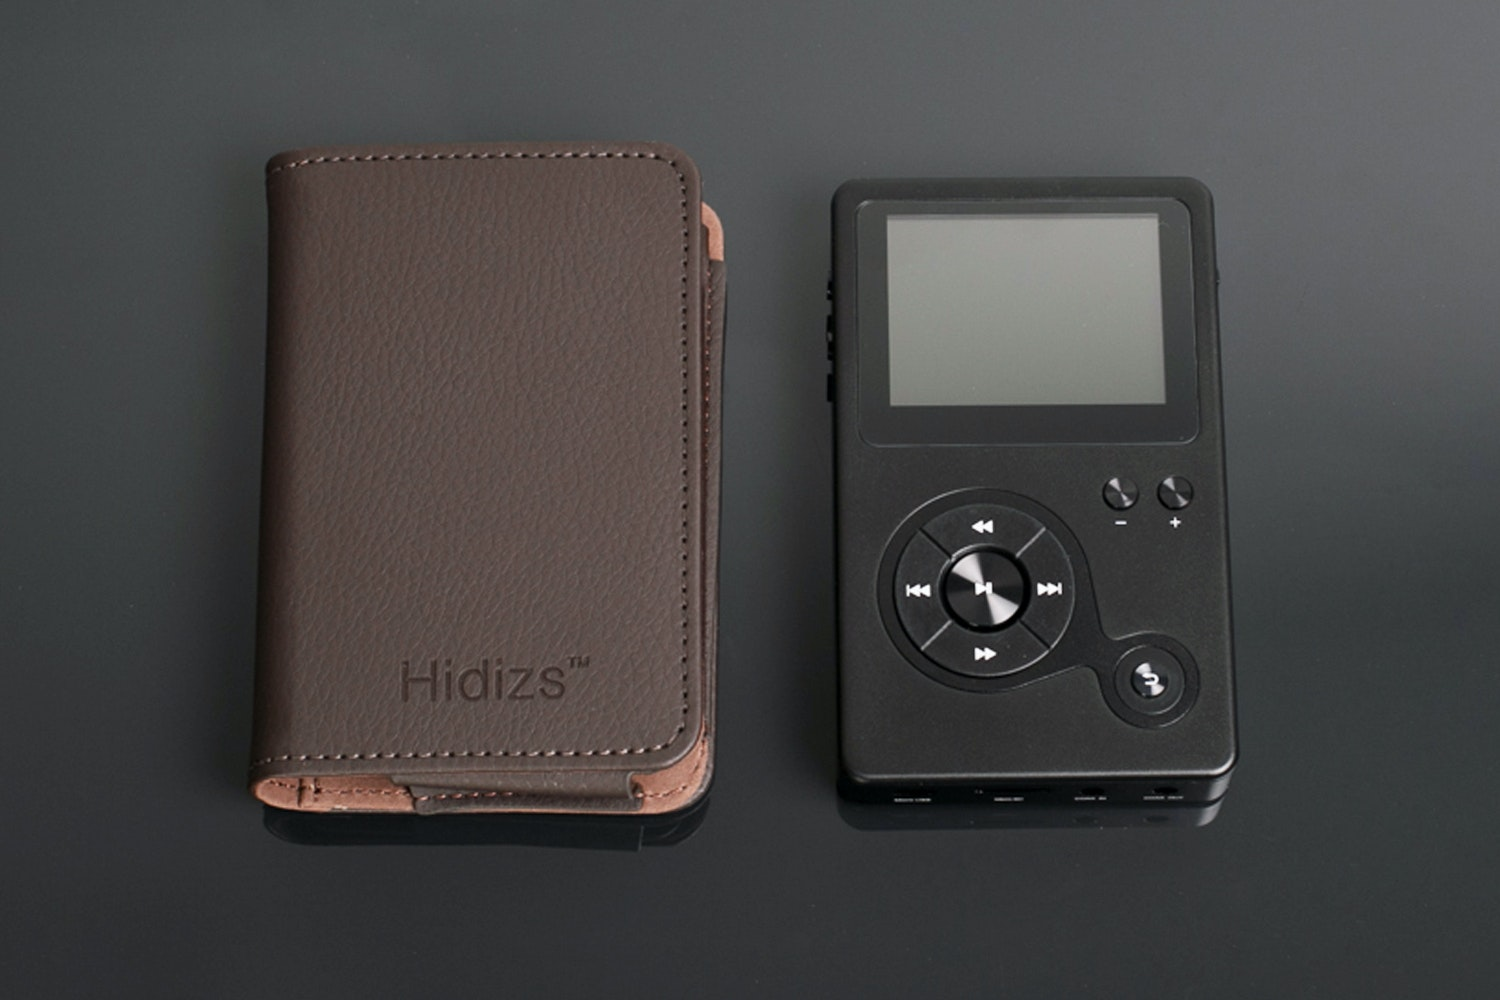 Hidizs AP100 Portable HiFi Music Player